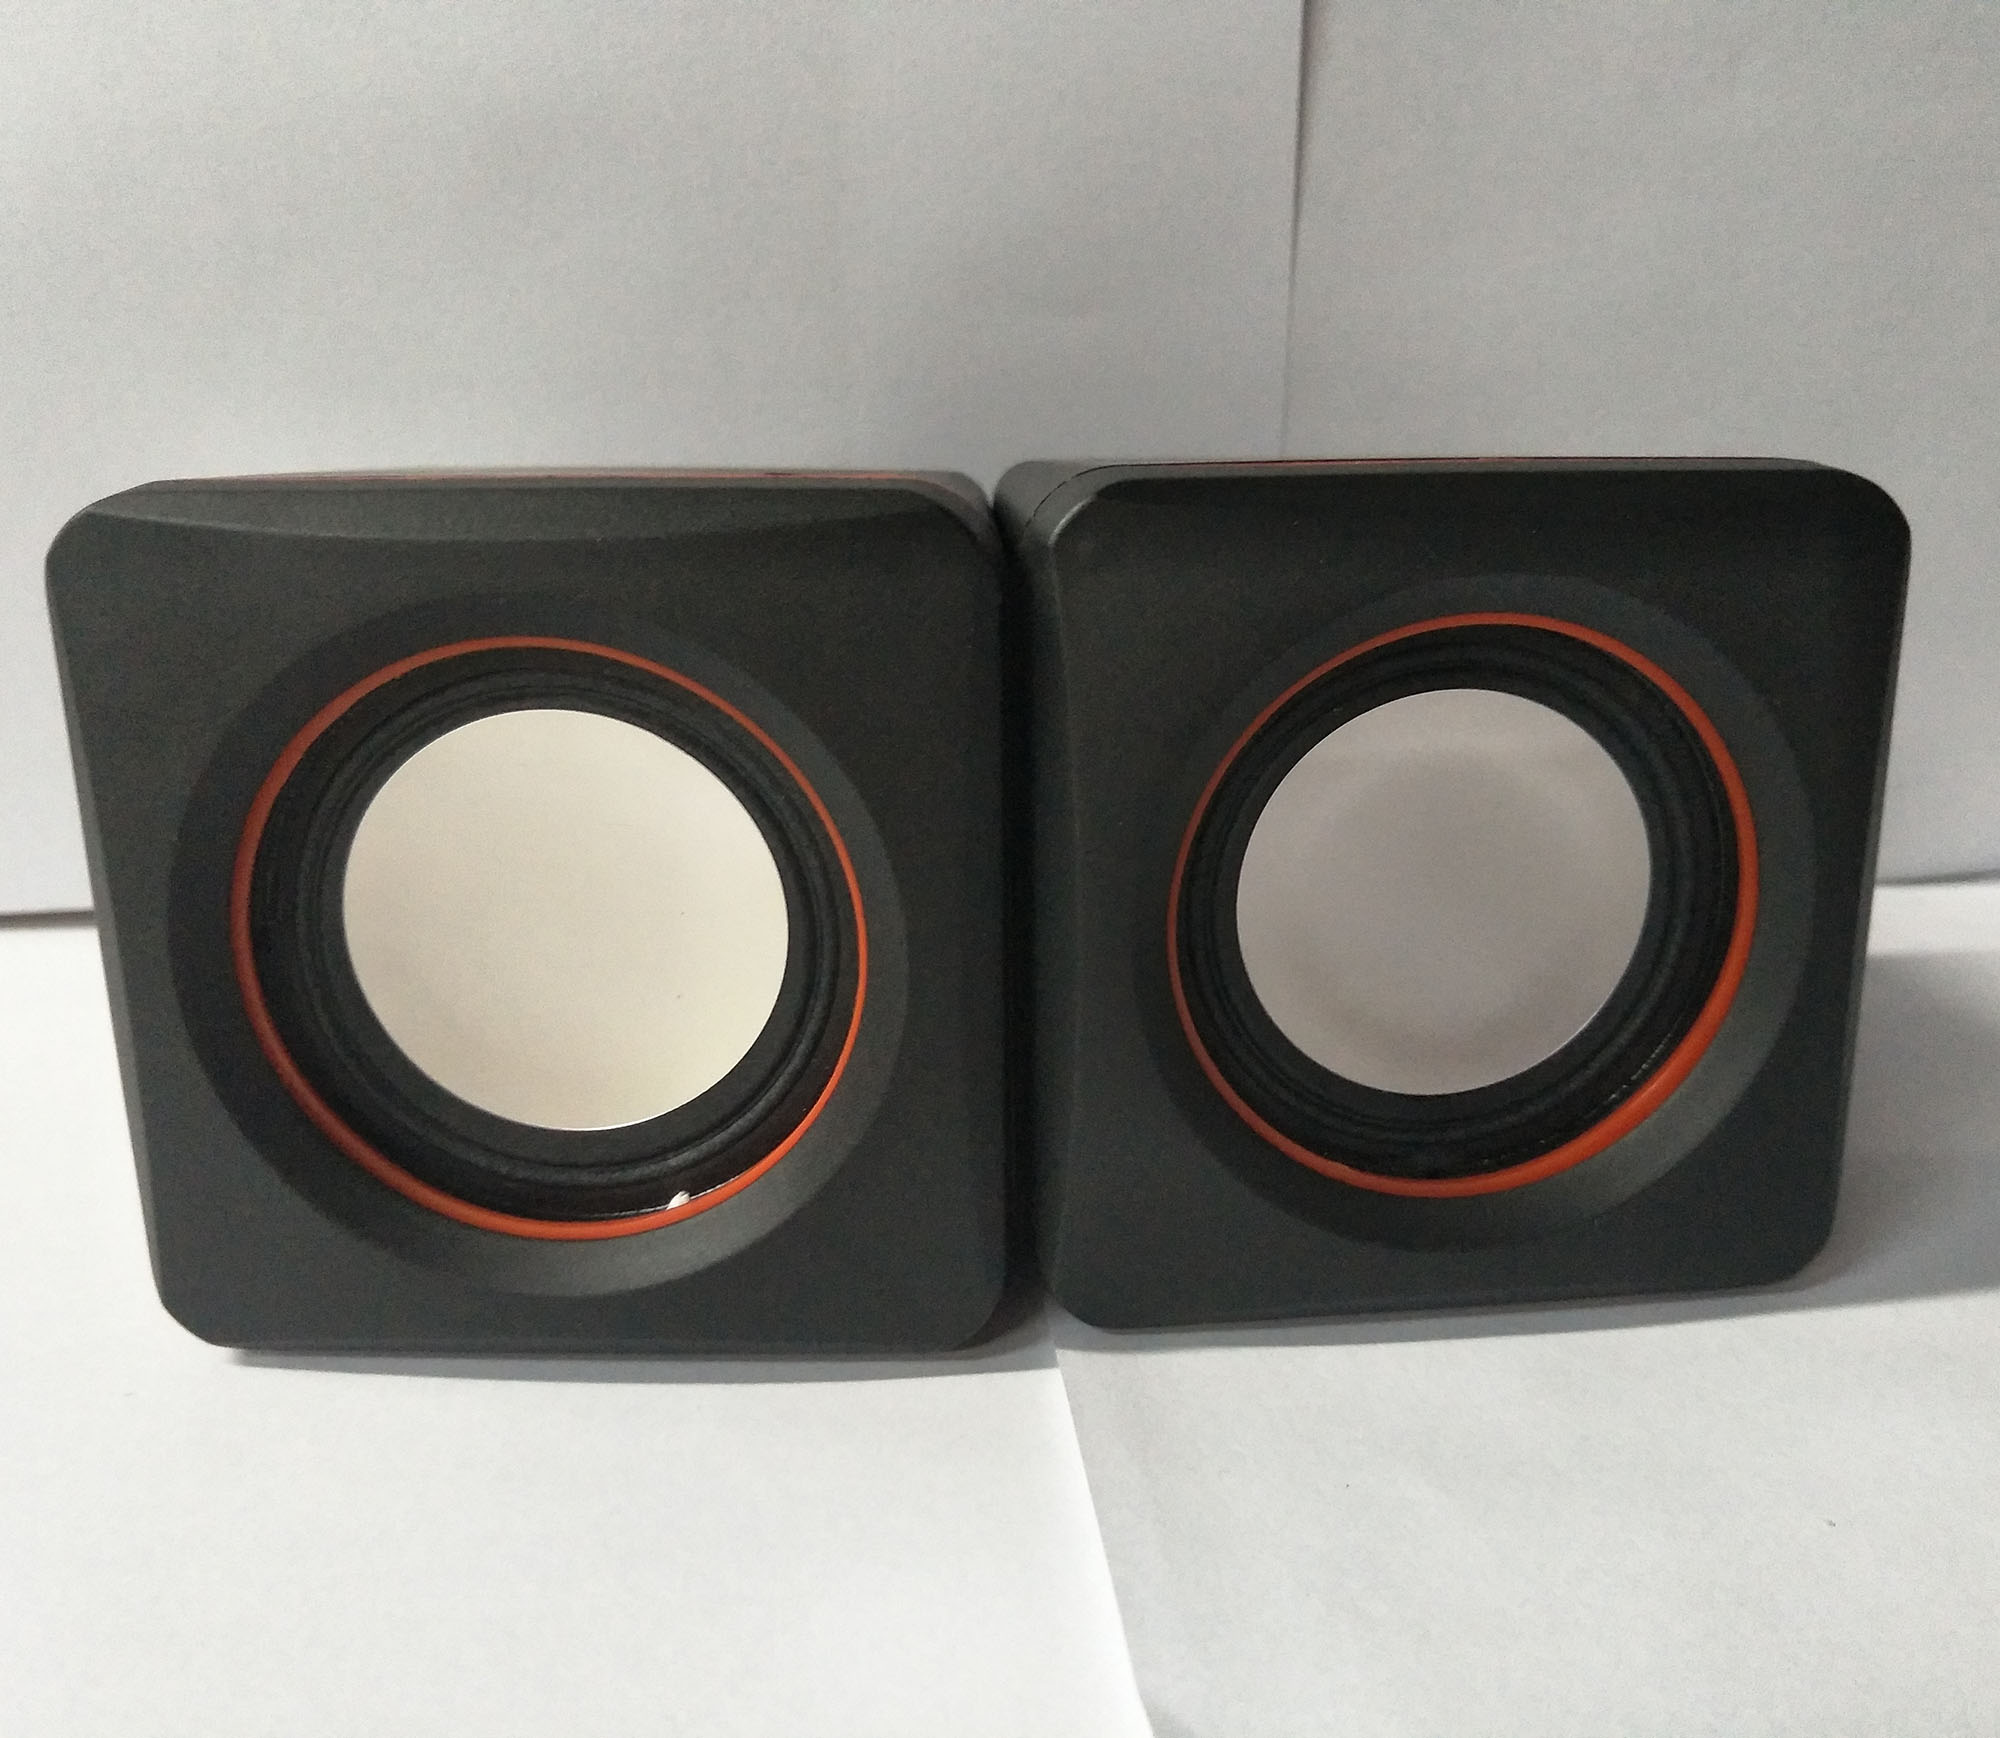 Hot Murah USB Menghubungkan Square Komputer PC 2.0 Mini Speaker